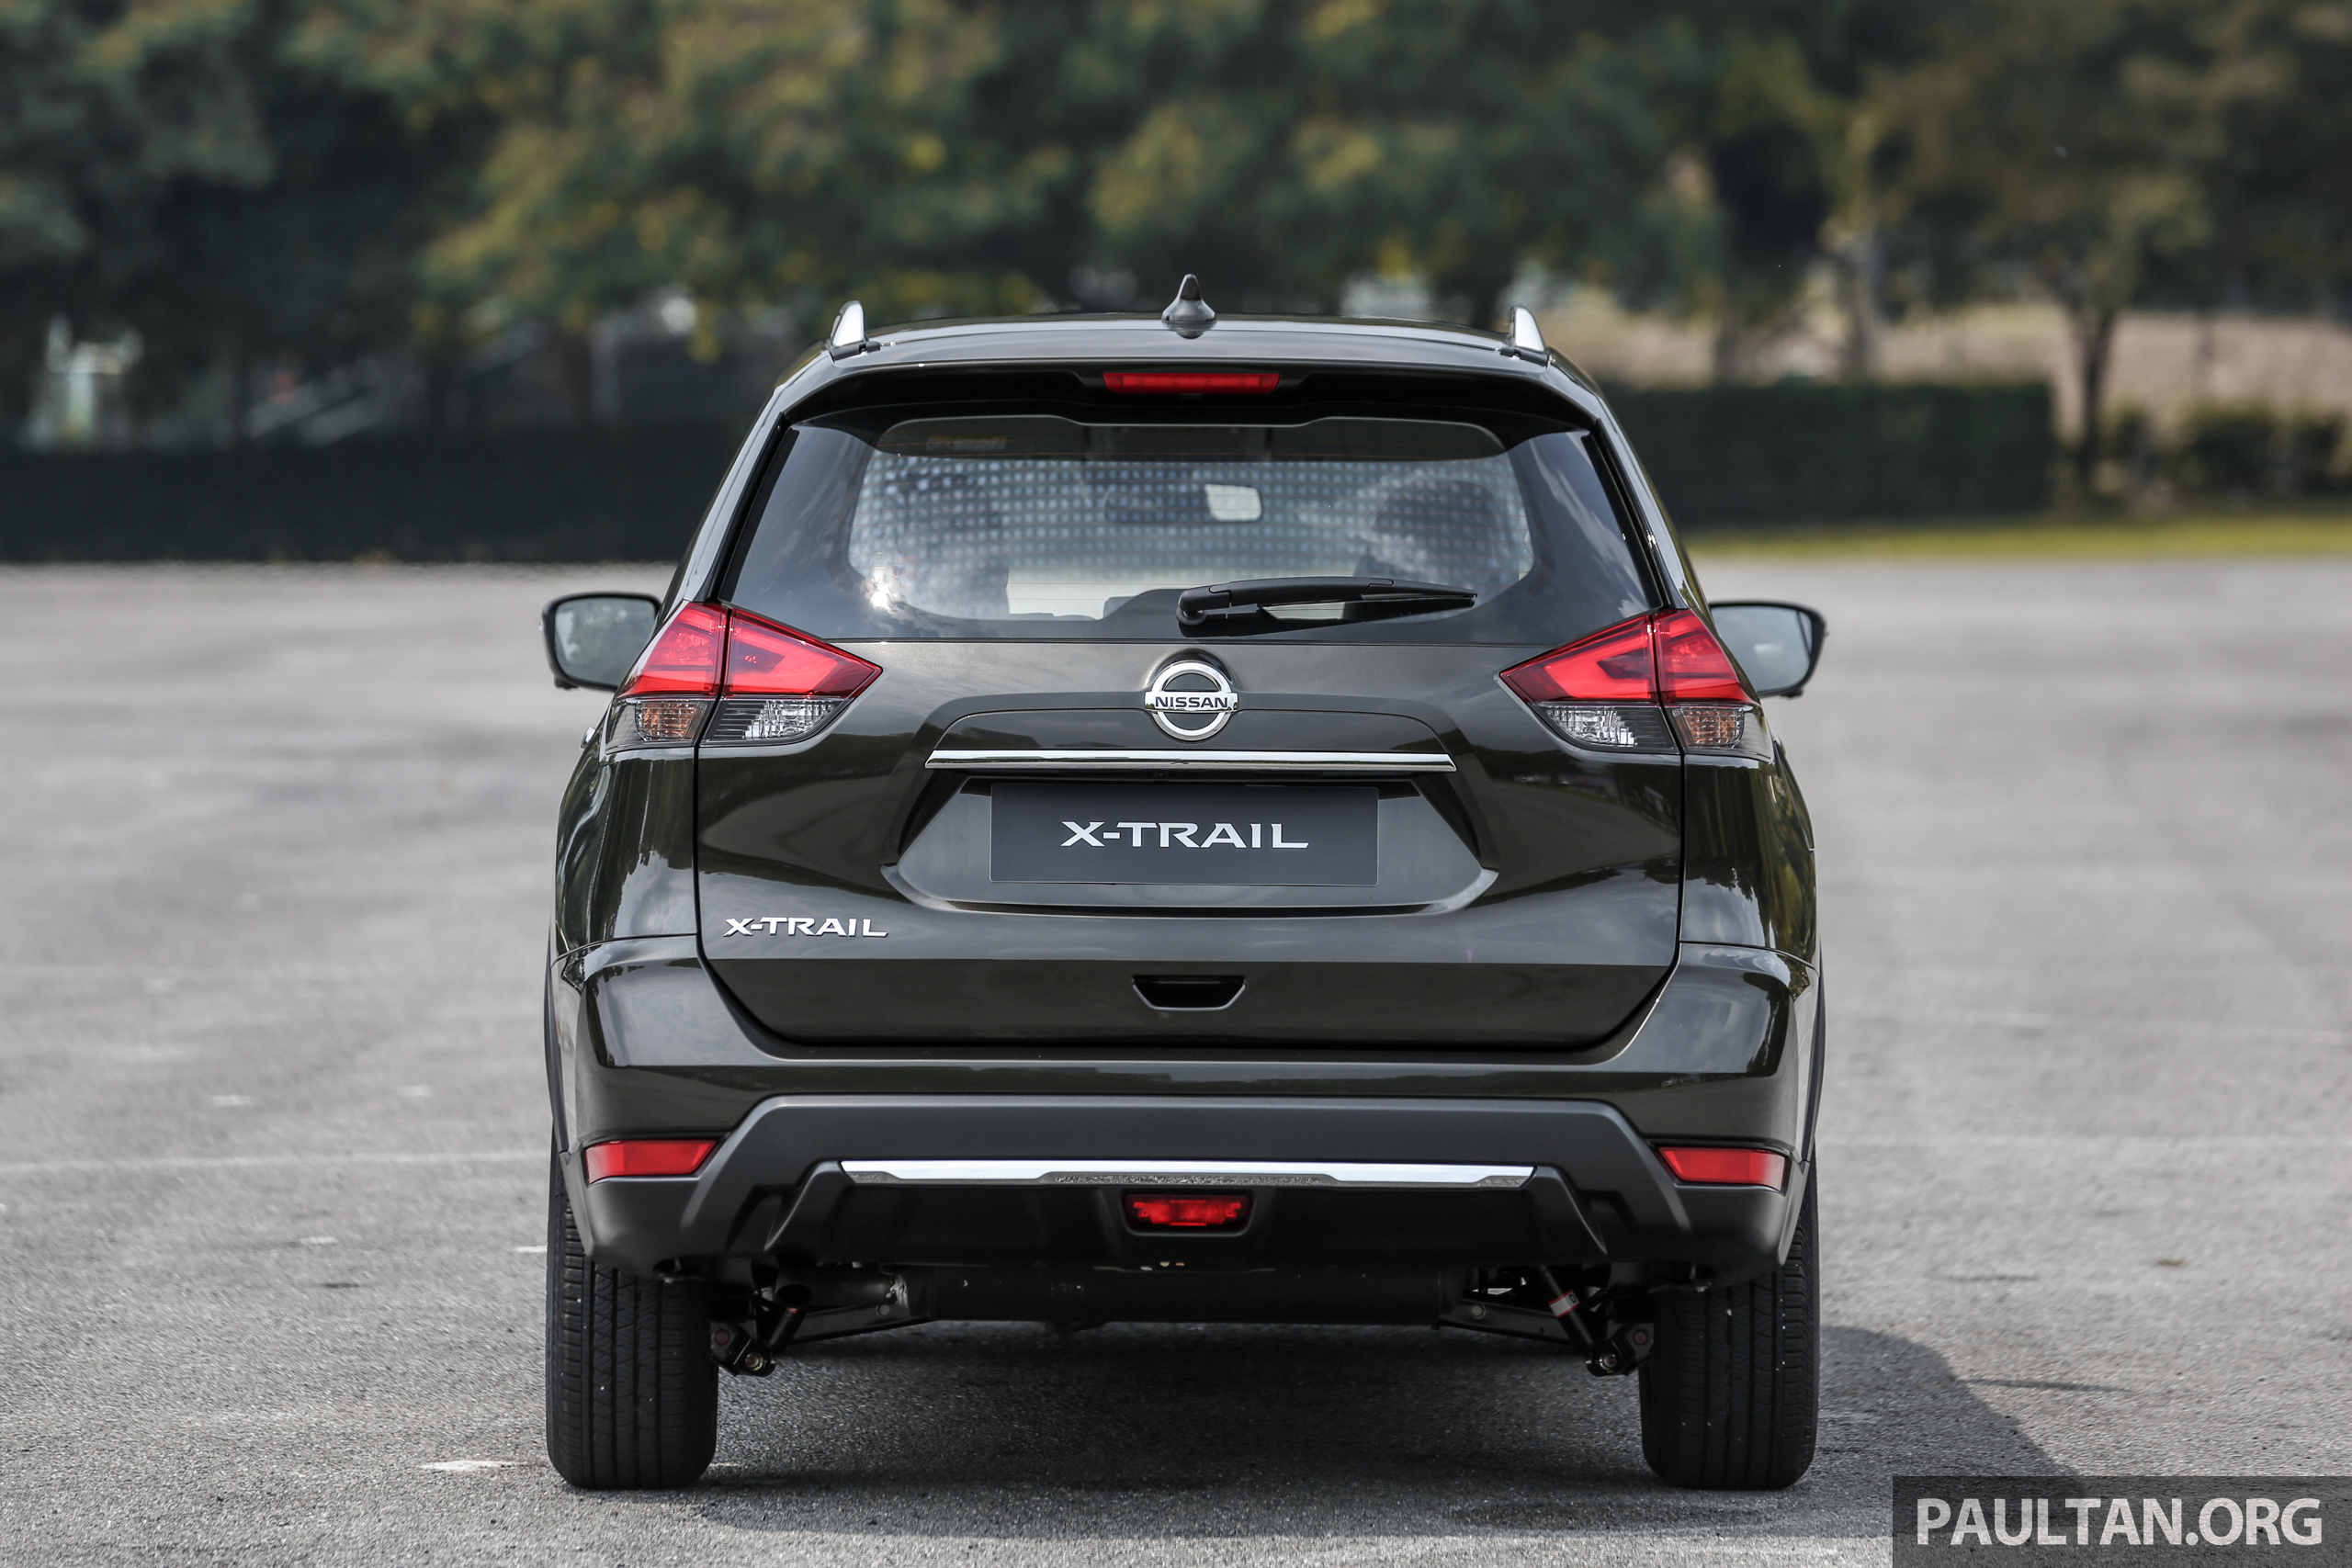 gallery: t32 nissan x-trail - new 2019 facelift vs old